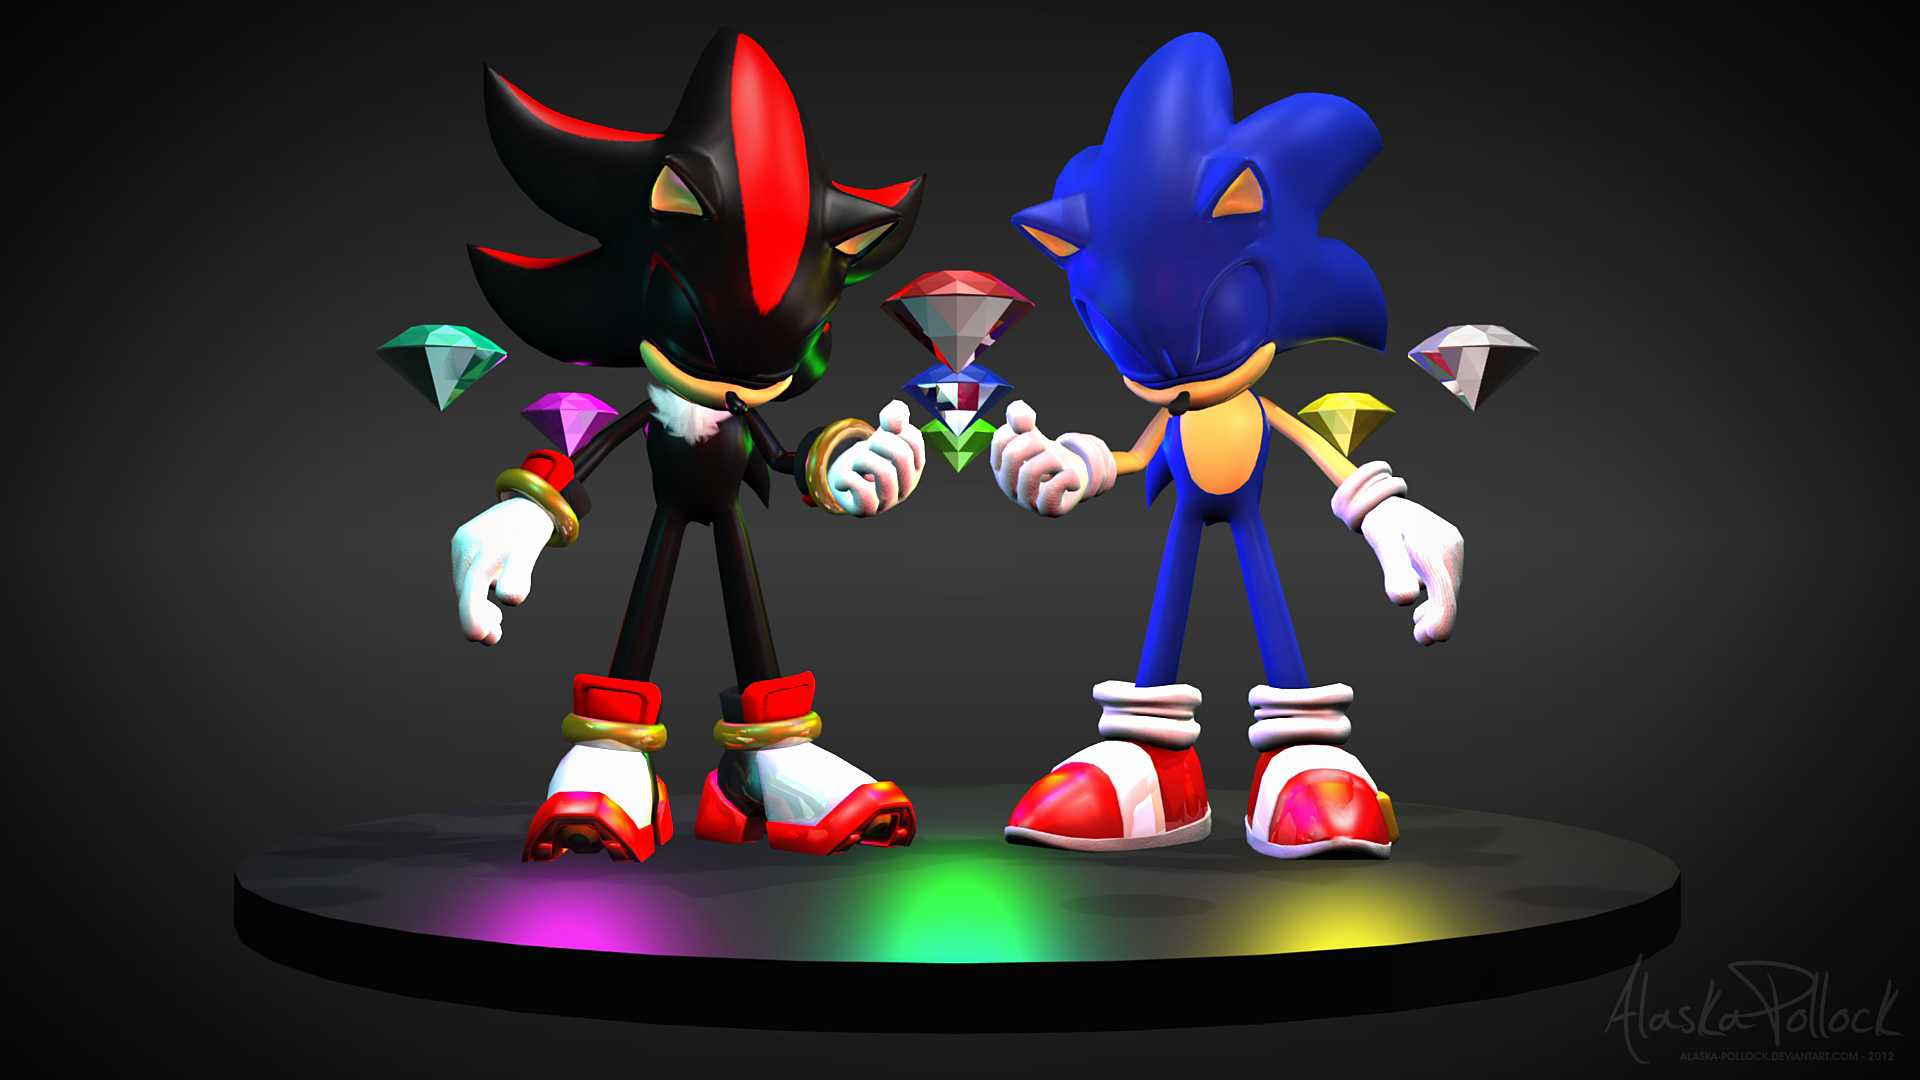 (04:30) Sonic Live And Learn 320 kbps Mp3 Download - MP3Goo